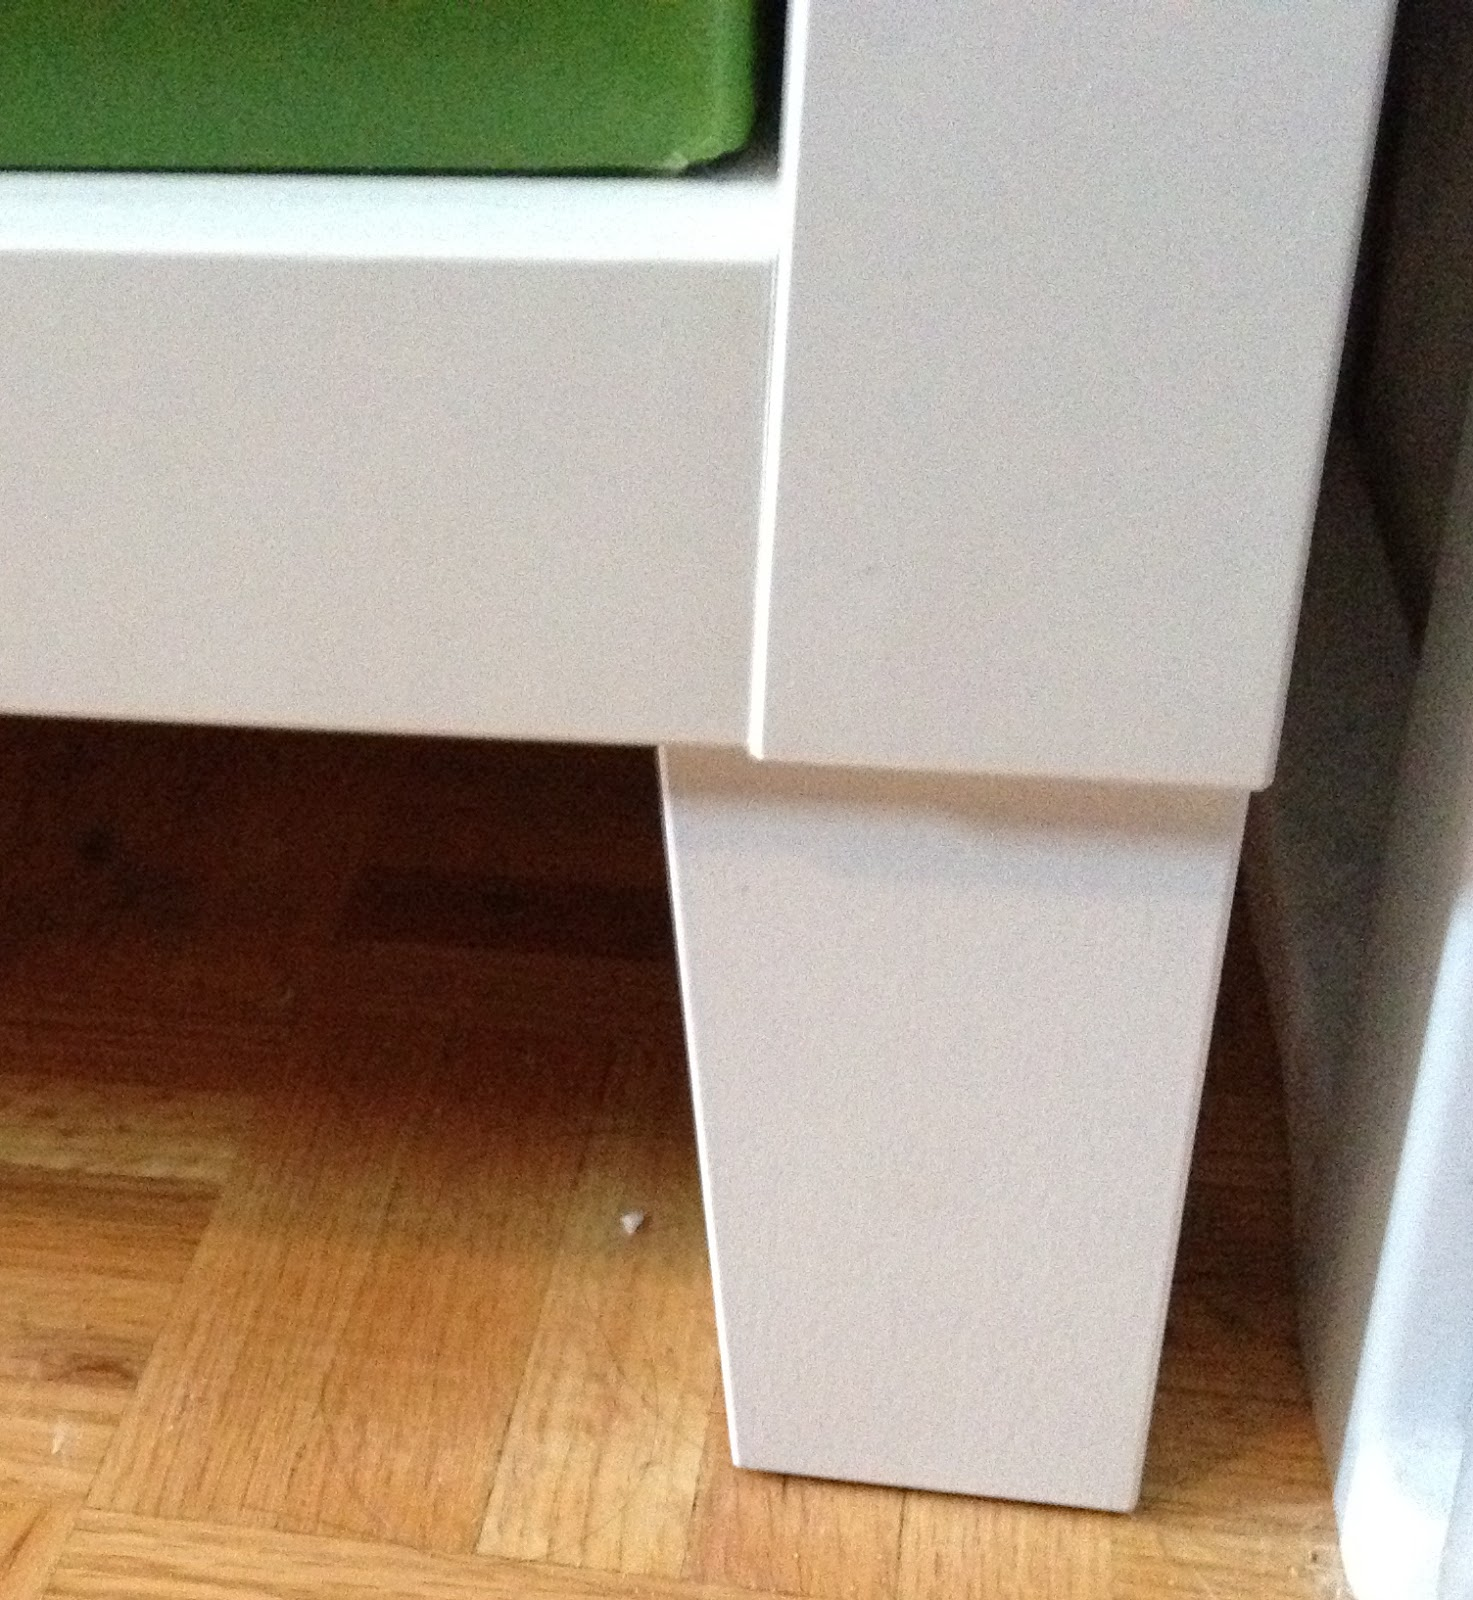 my cheap ass life project expedit with legs cost